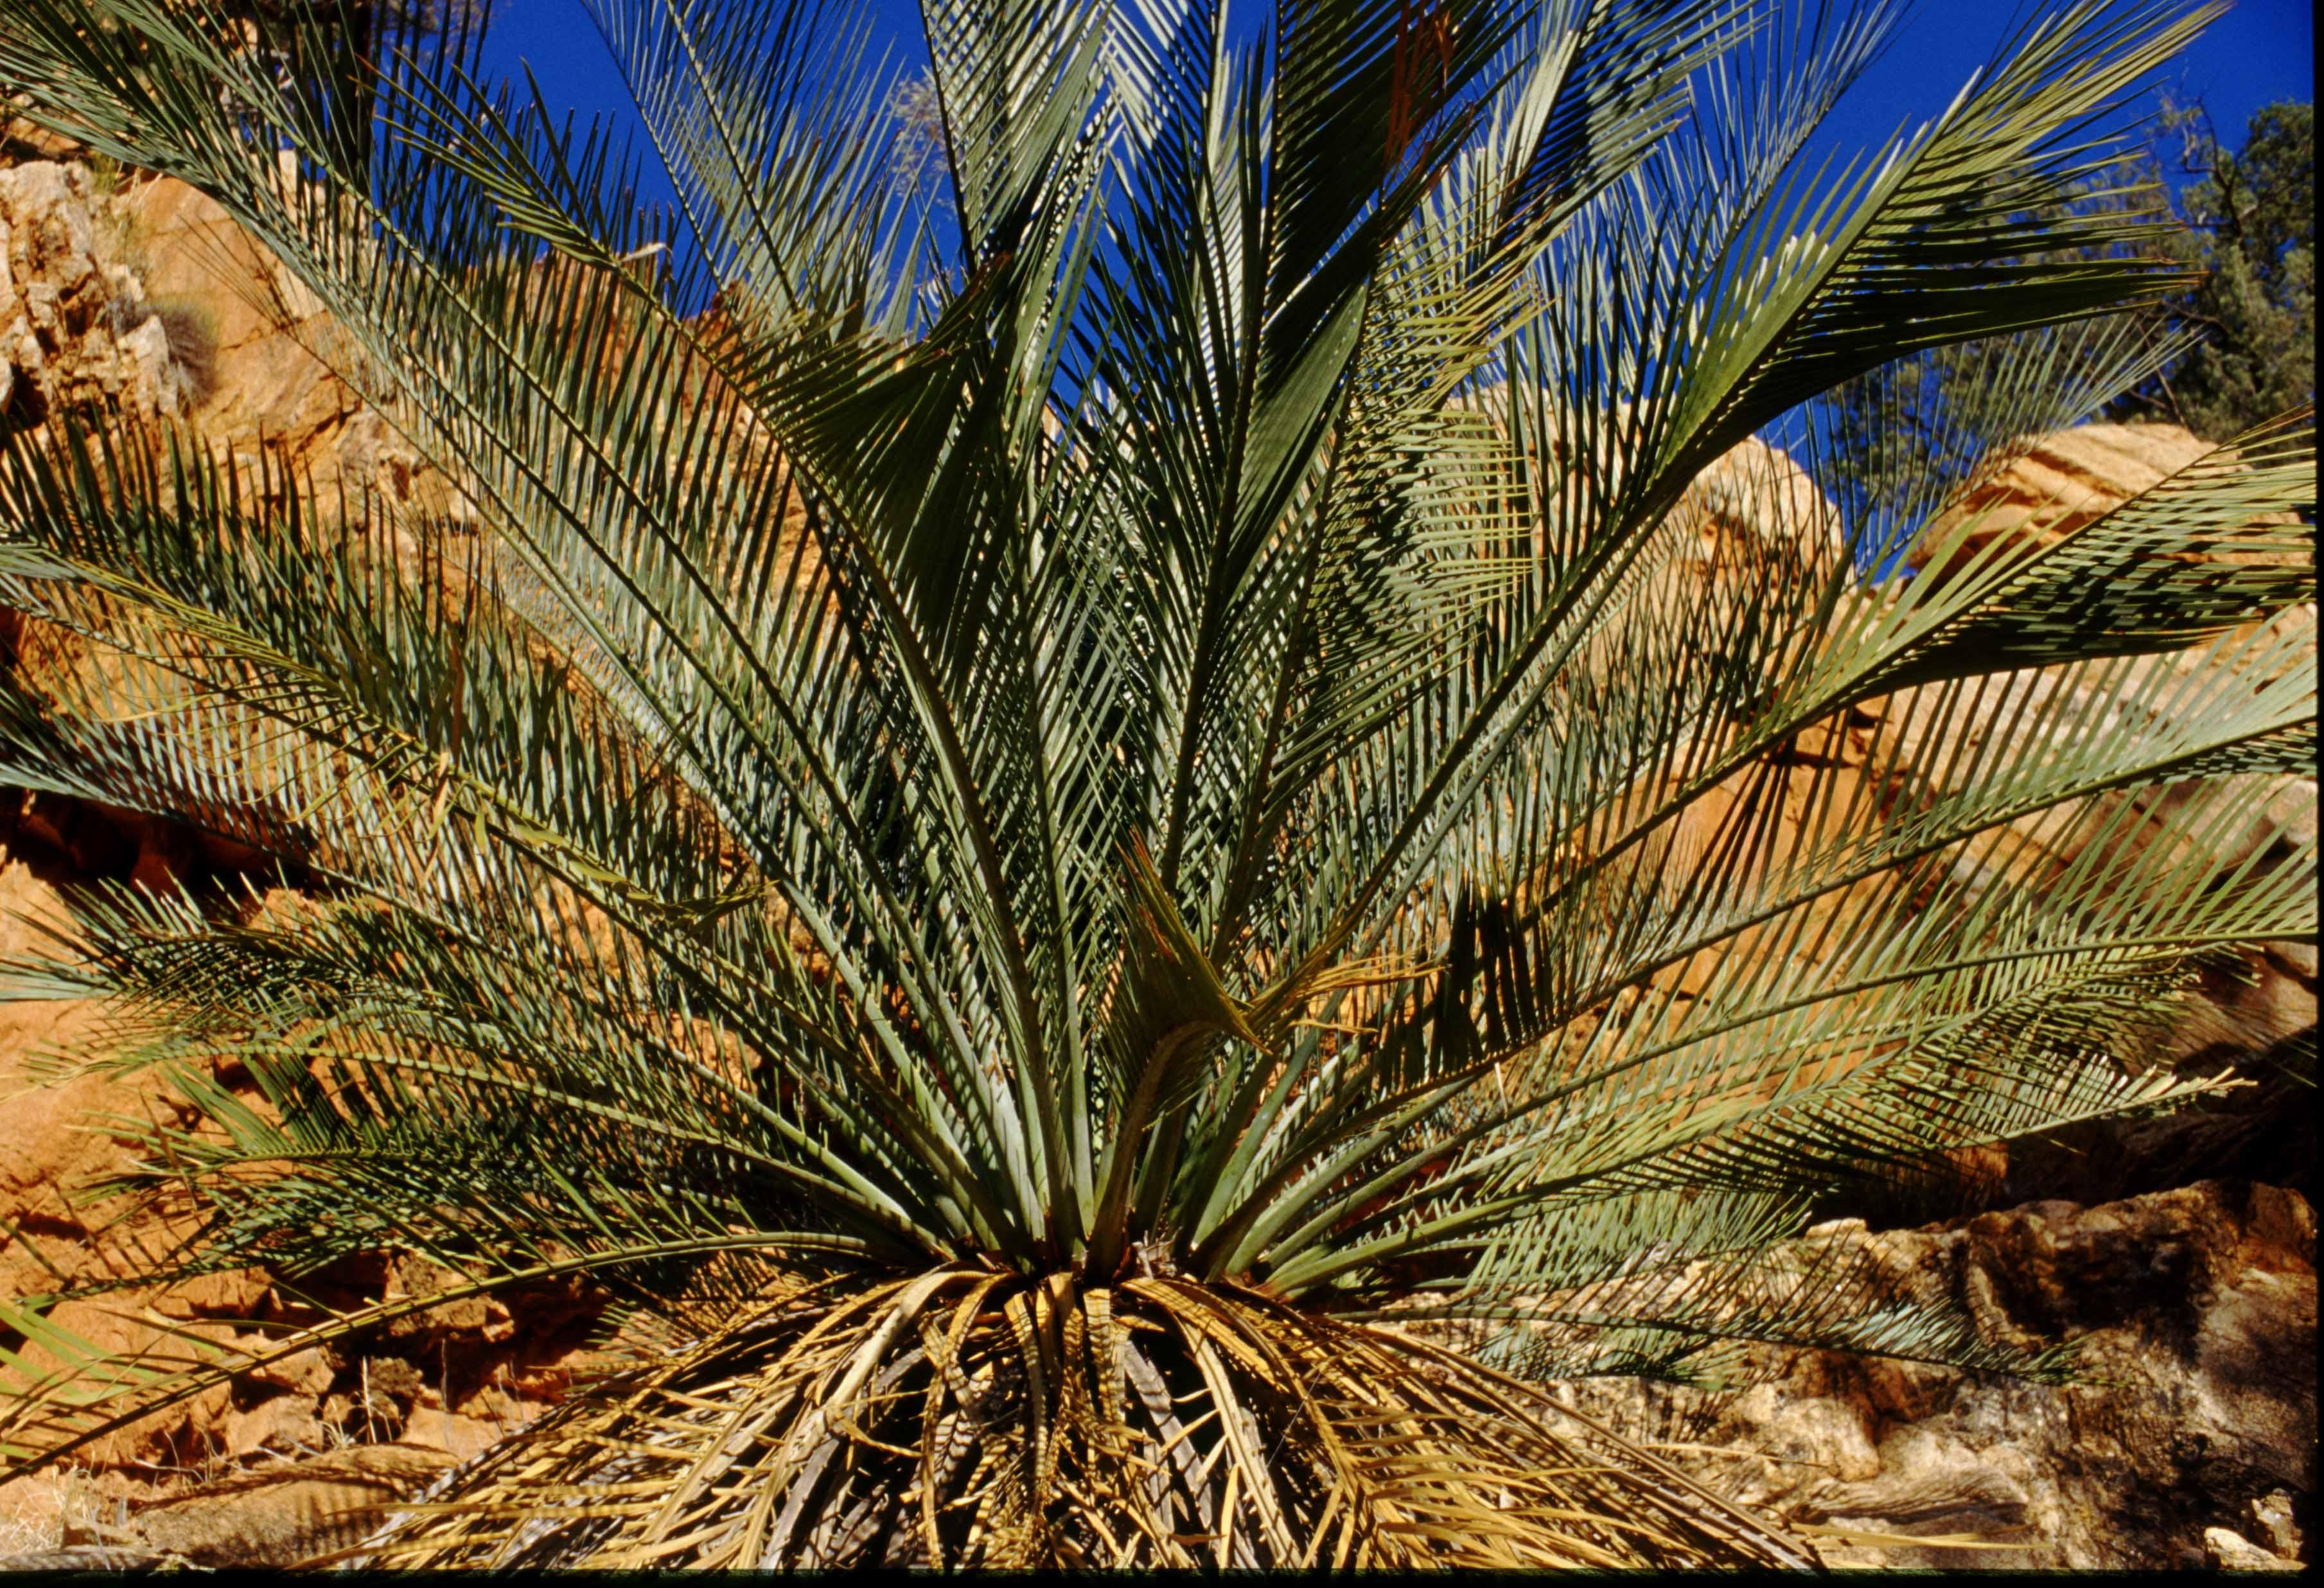 deserts animals and plants - photo #13